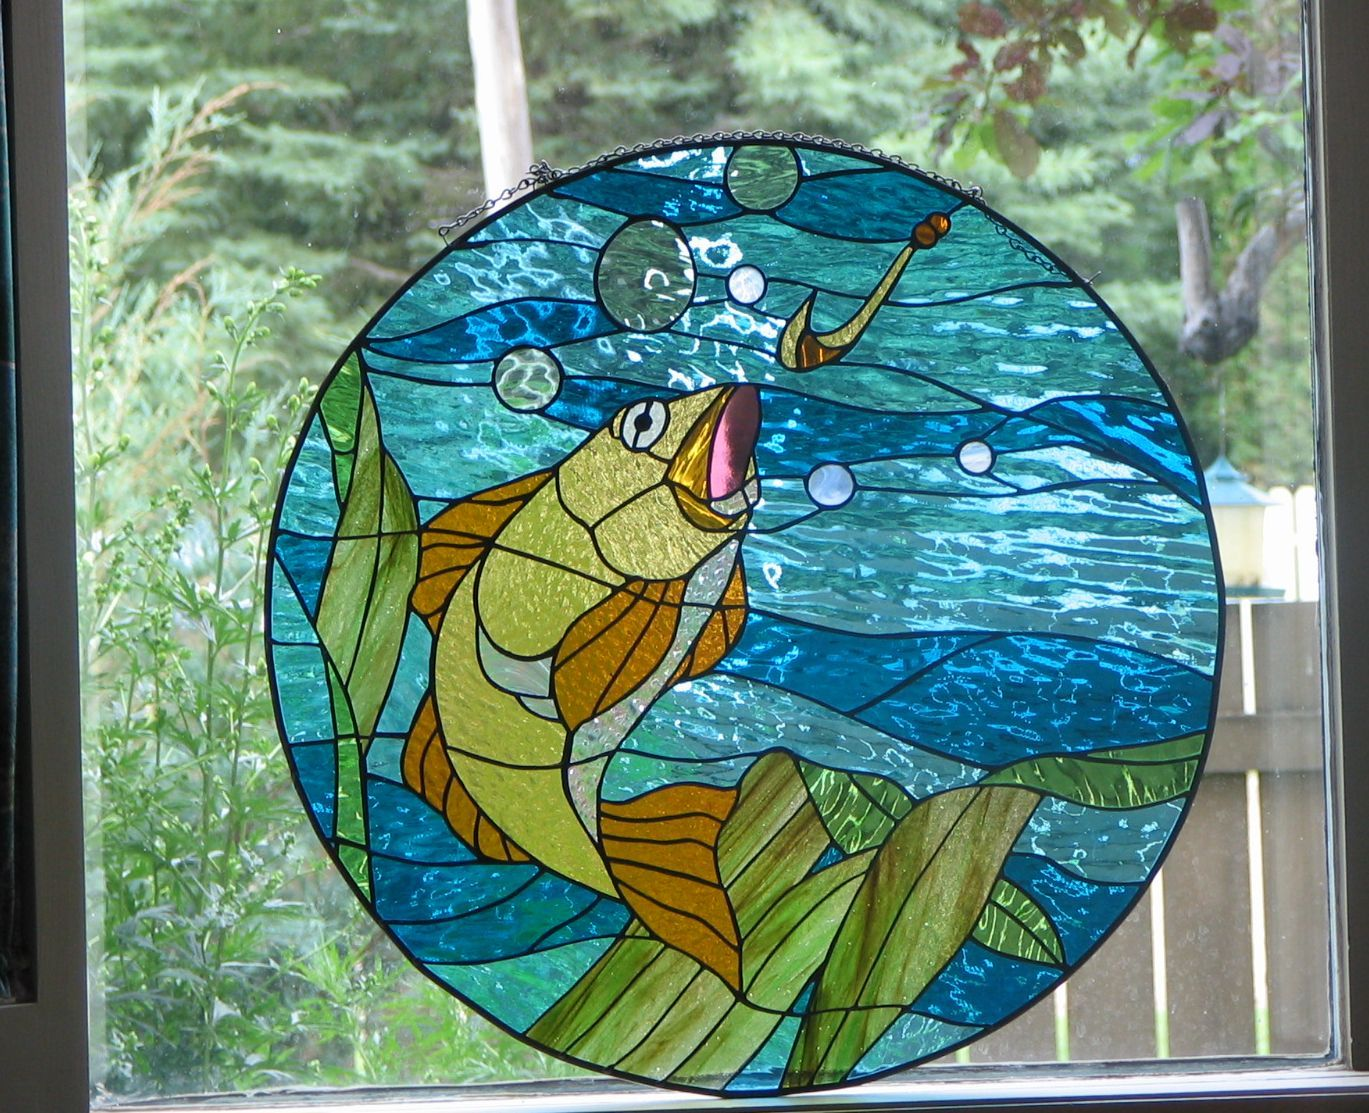 Fish underwater taking bait stained glass fish for Stained glass fish patterns